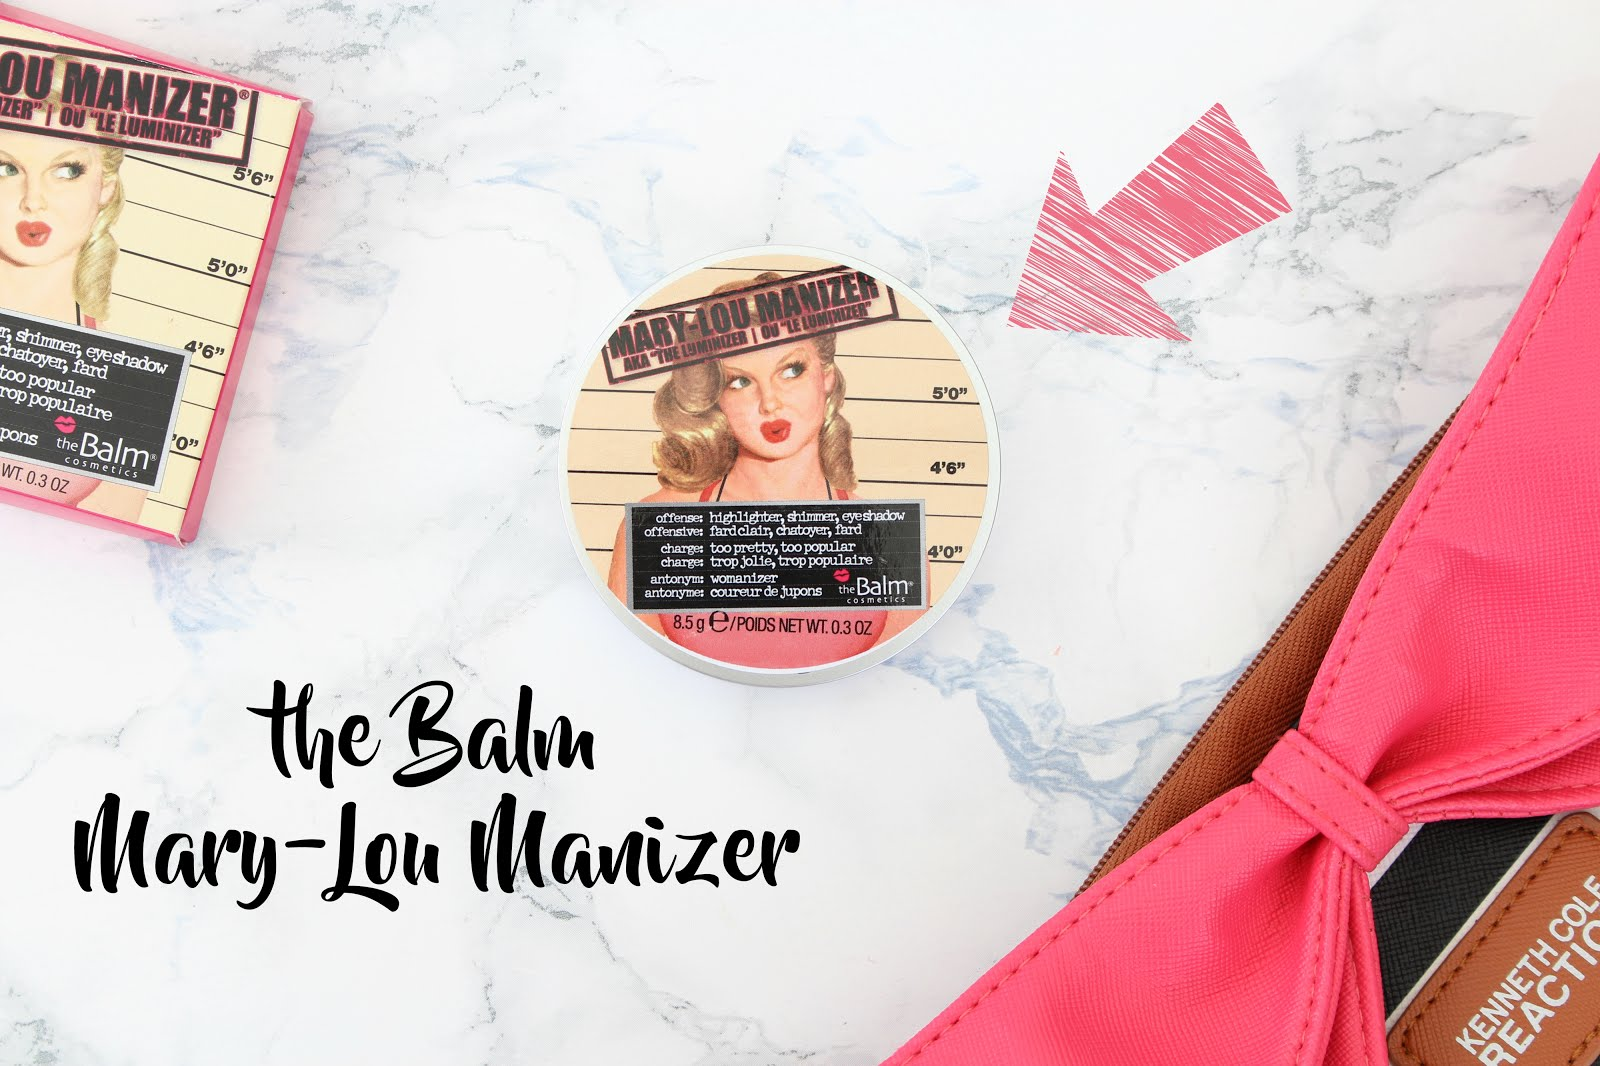 the balm, the balm mary lou manizer, mary lou manizer, mary lou manizer highlighter, highlighter, the balm review, the balm mary lou manizer review, mary lou manizer review, mary lou manizer highlighter review, highlighter review, nelly ray, nelly ray blog, beautyblog, beauty blogger, blogger german blogger, deutsche beautyblogs